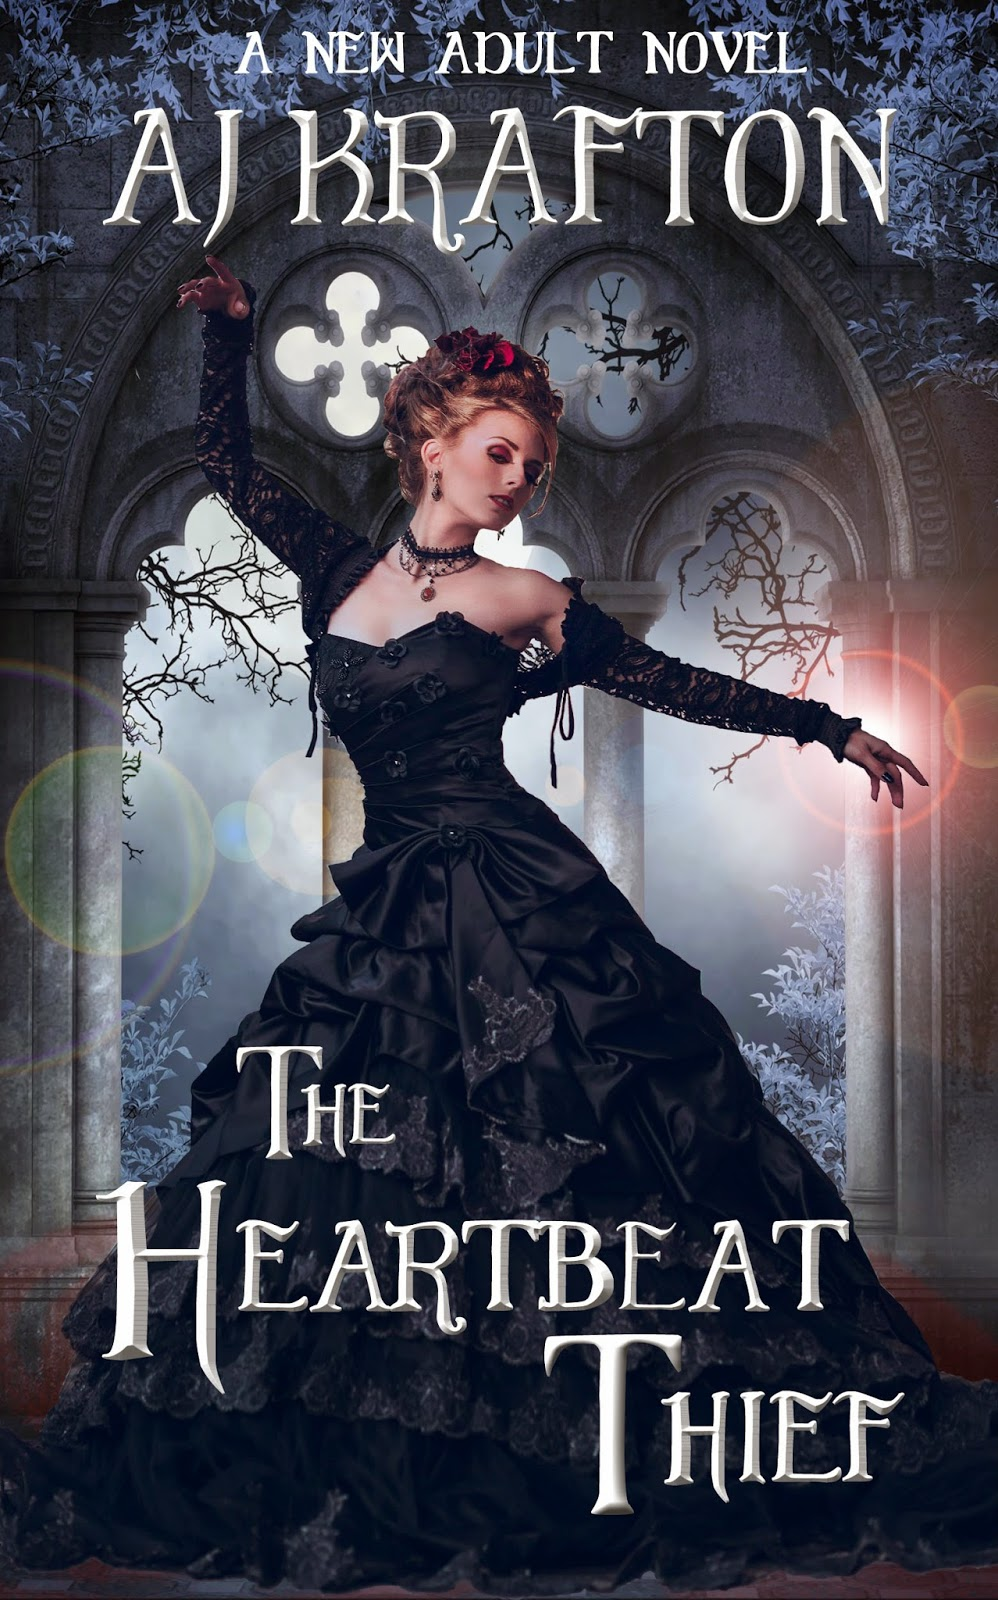 paranormal, Victorian, dark fantasy, new adult, AJ Krafton, magic